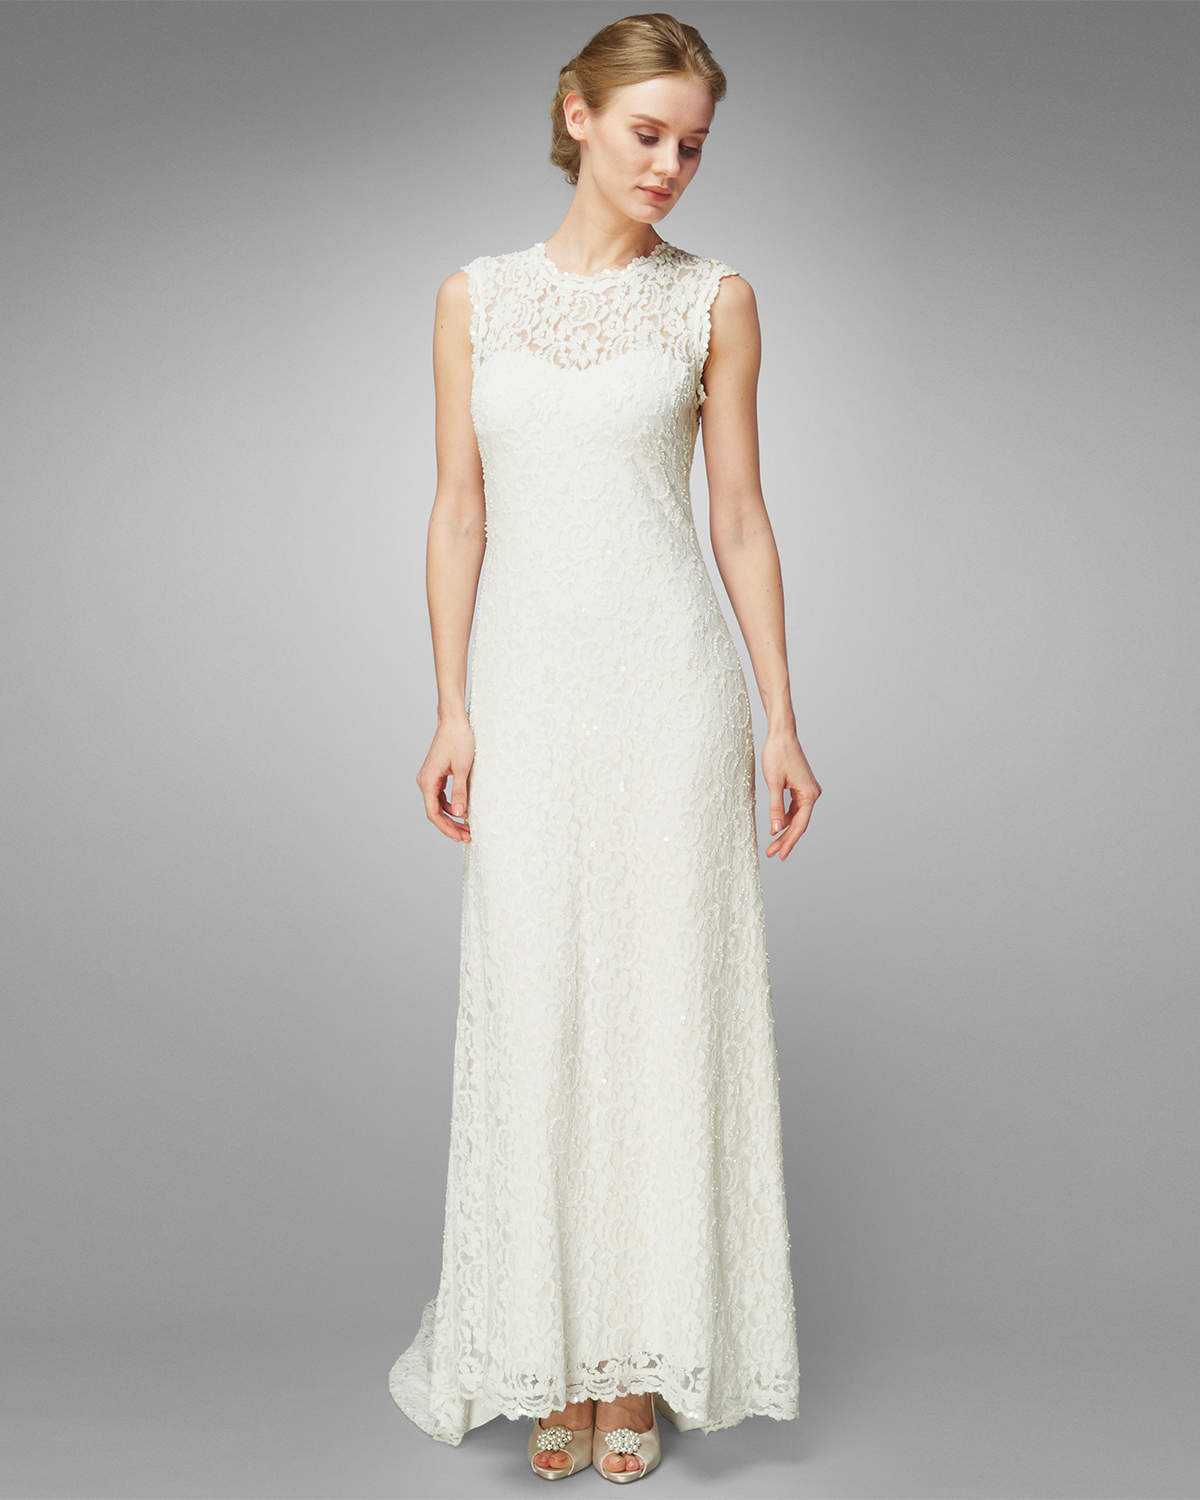 Phase eight 2014 spring bridal collection i for Phase eight wedding dresses